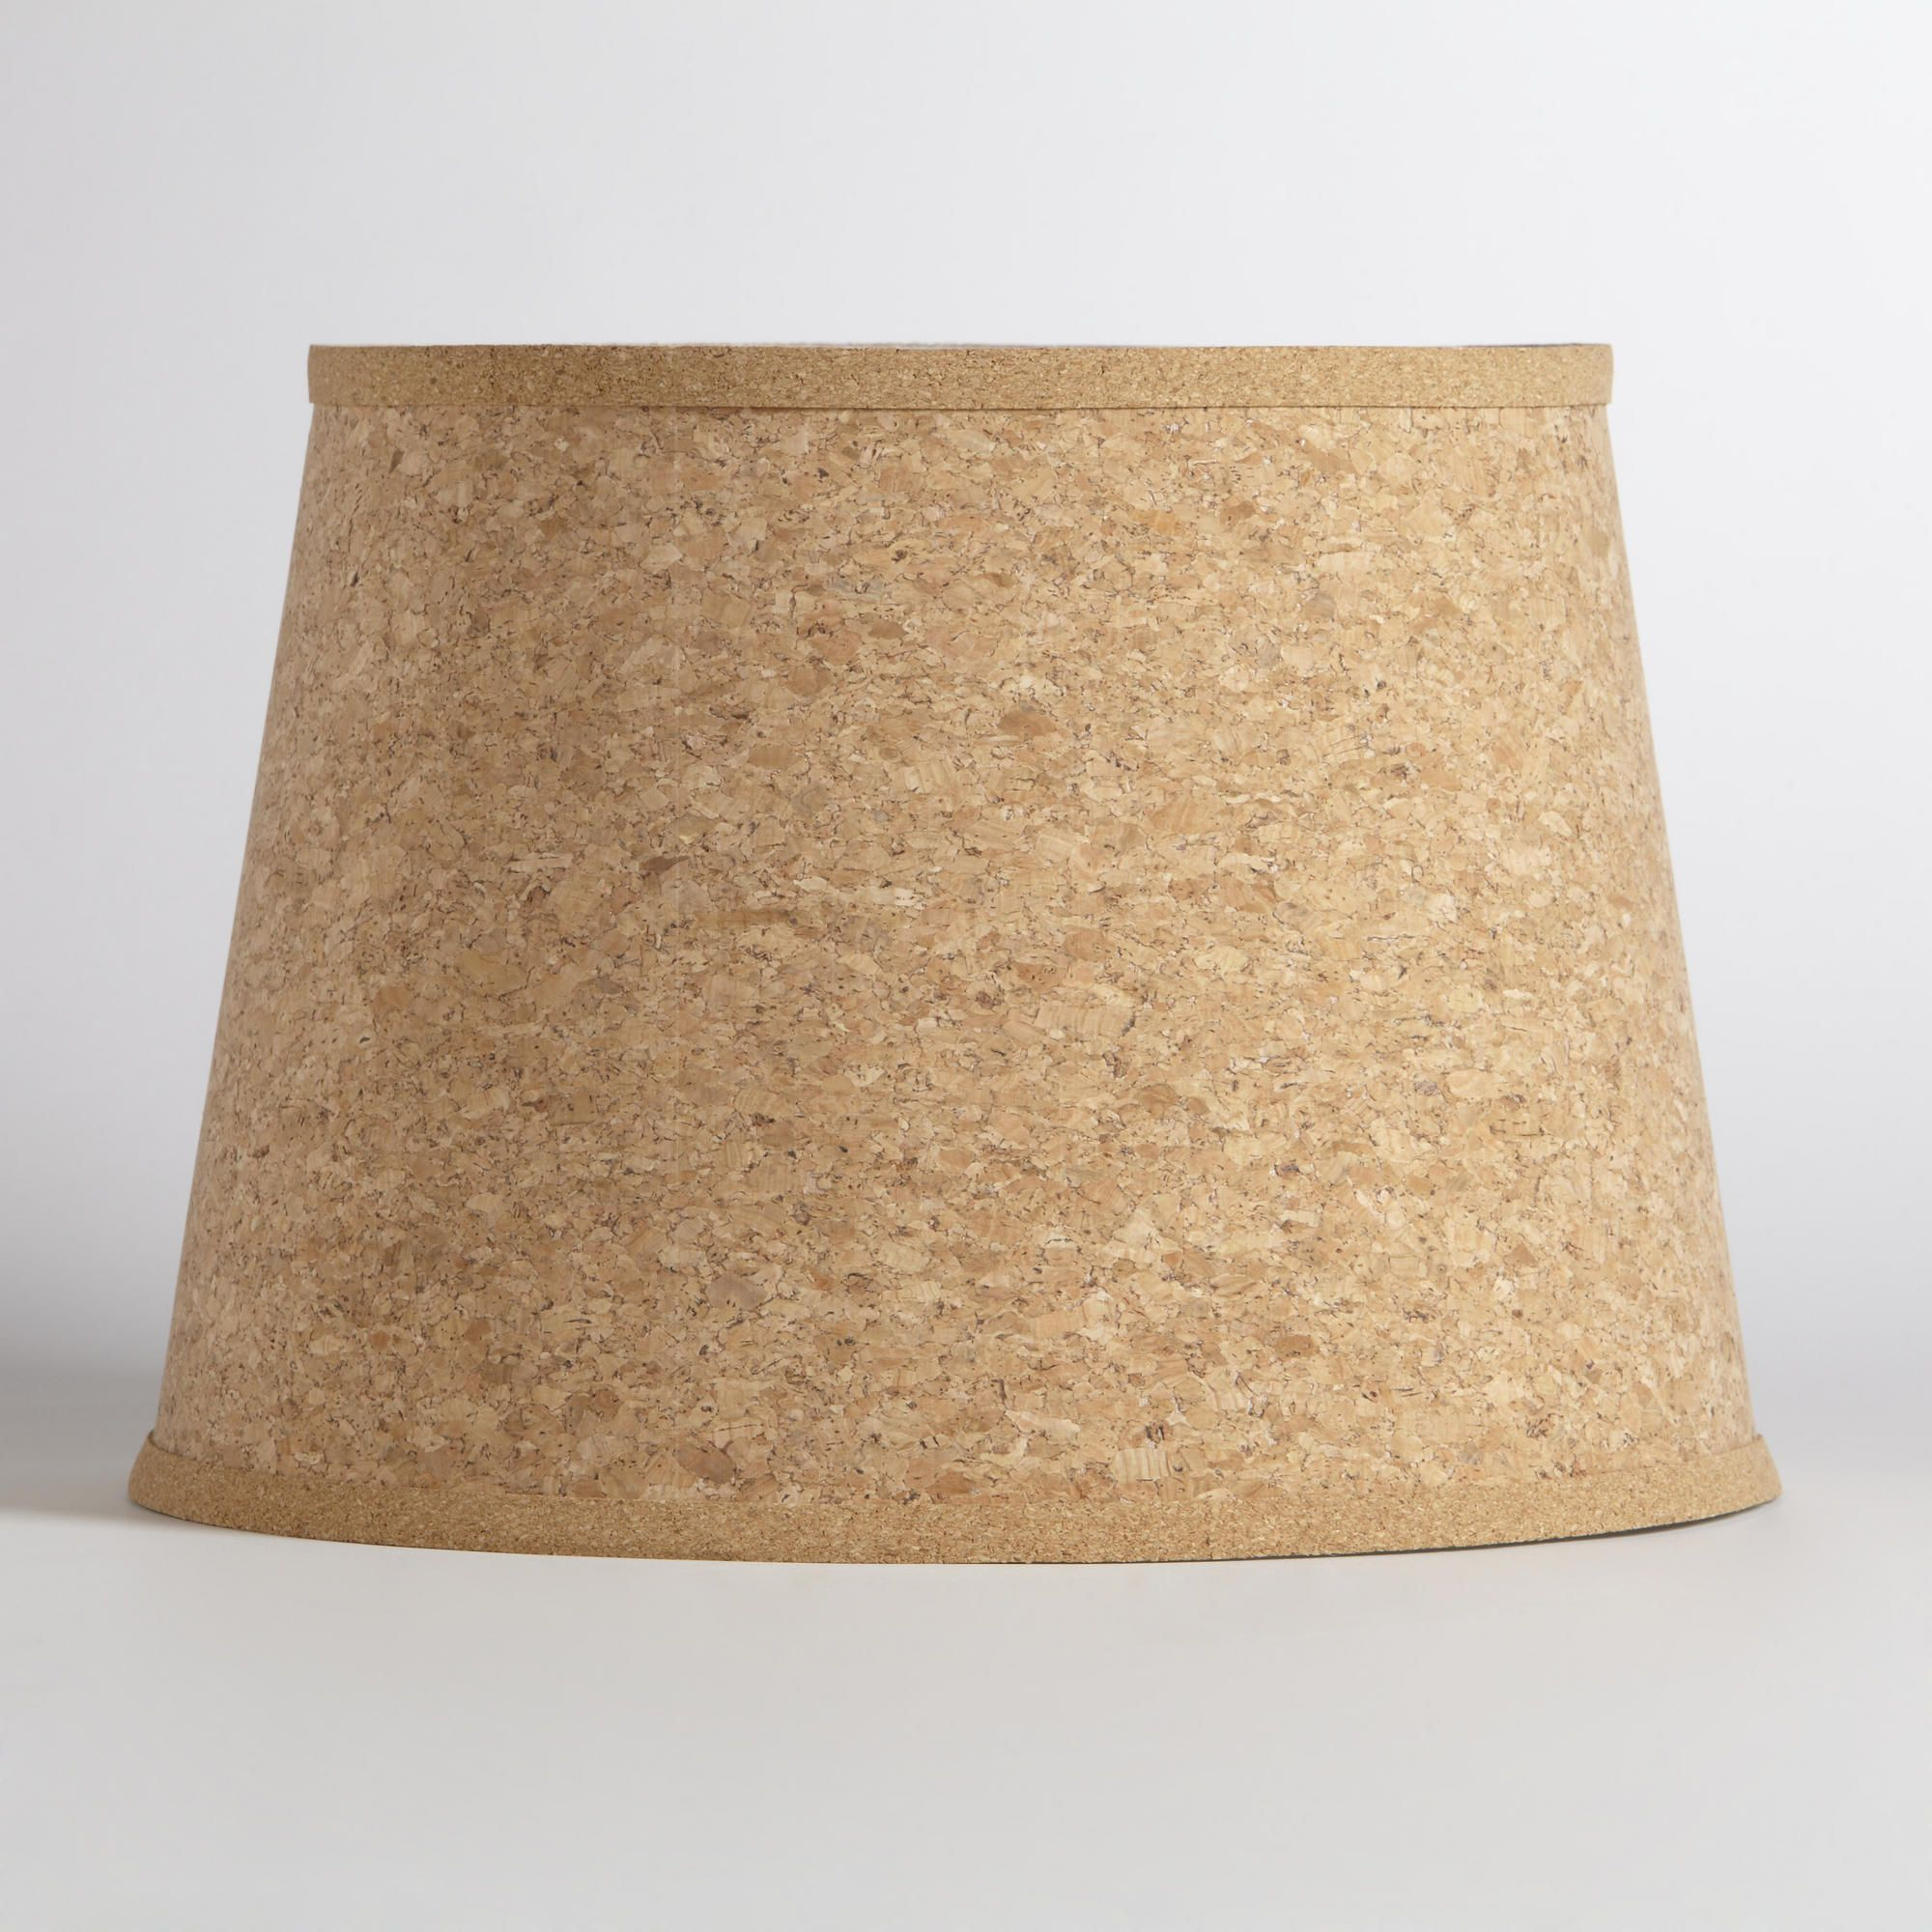 Natural cork table lamp shade natural cork table lamp shade natural cork table lamp shade natural cork table lamp shade world market geotapseo Image collections